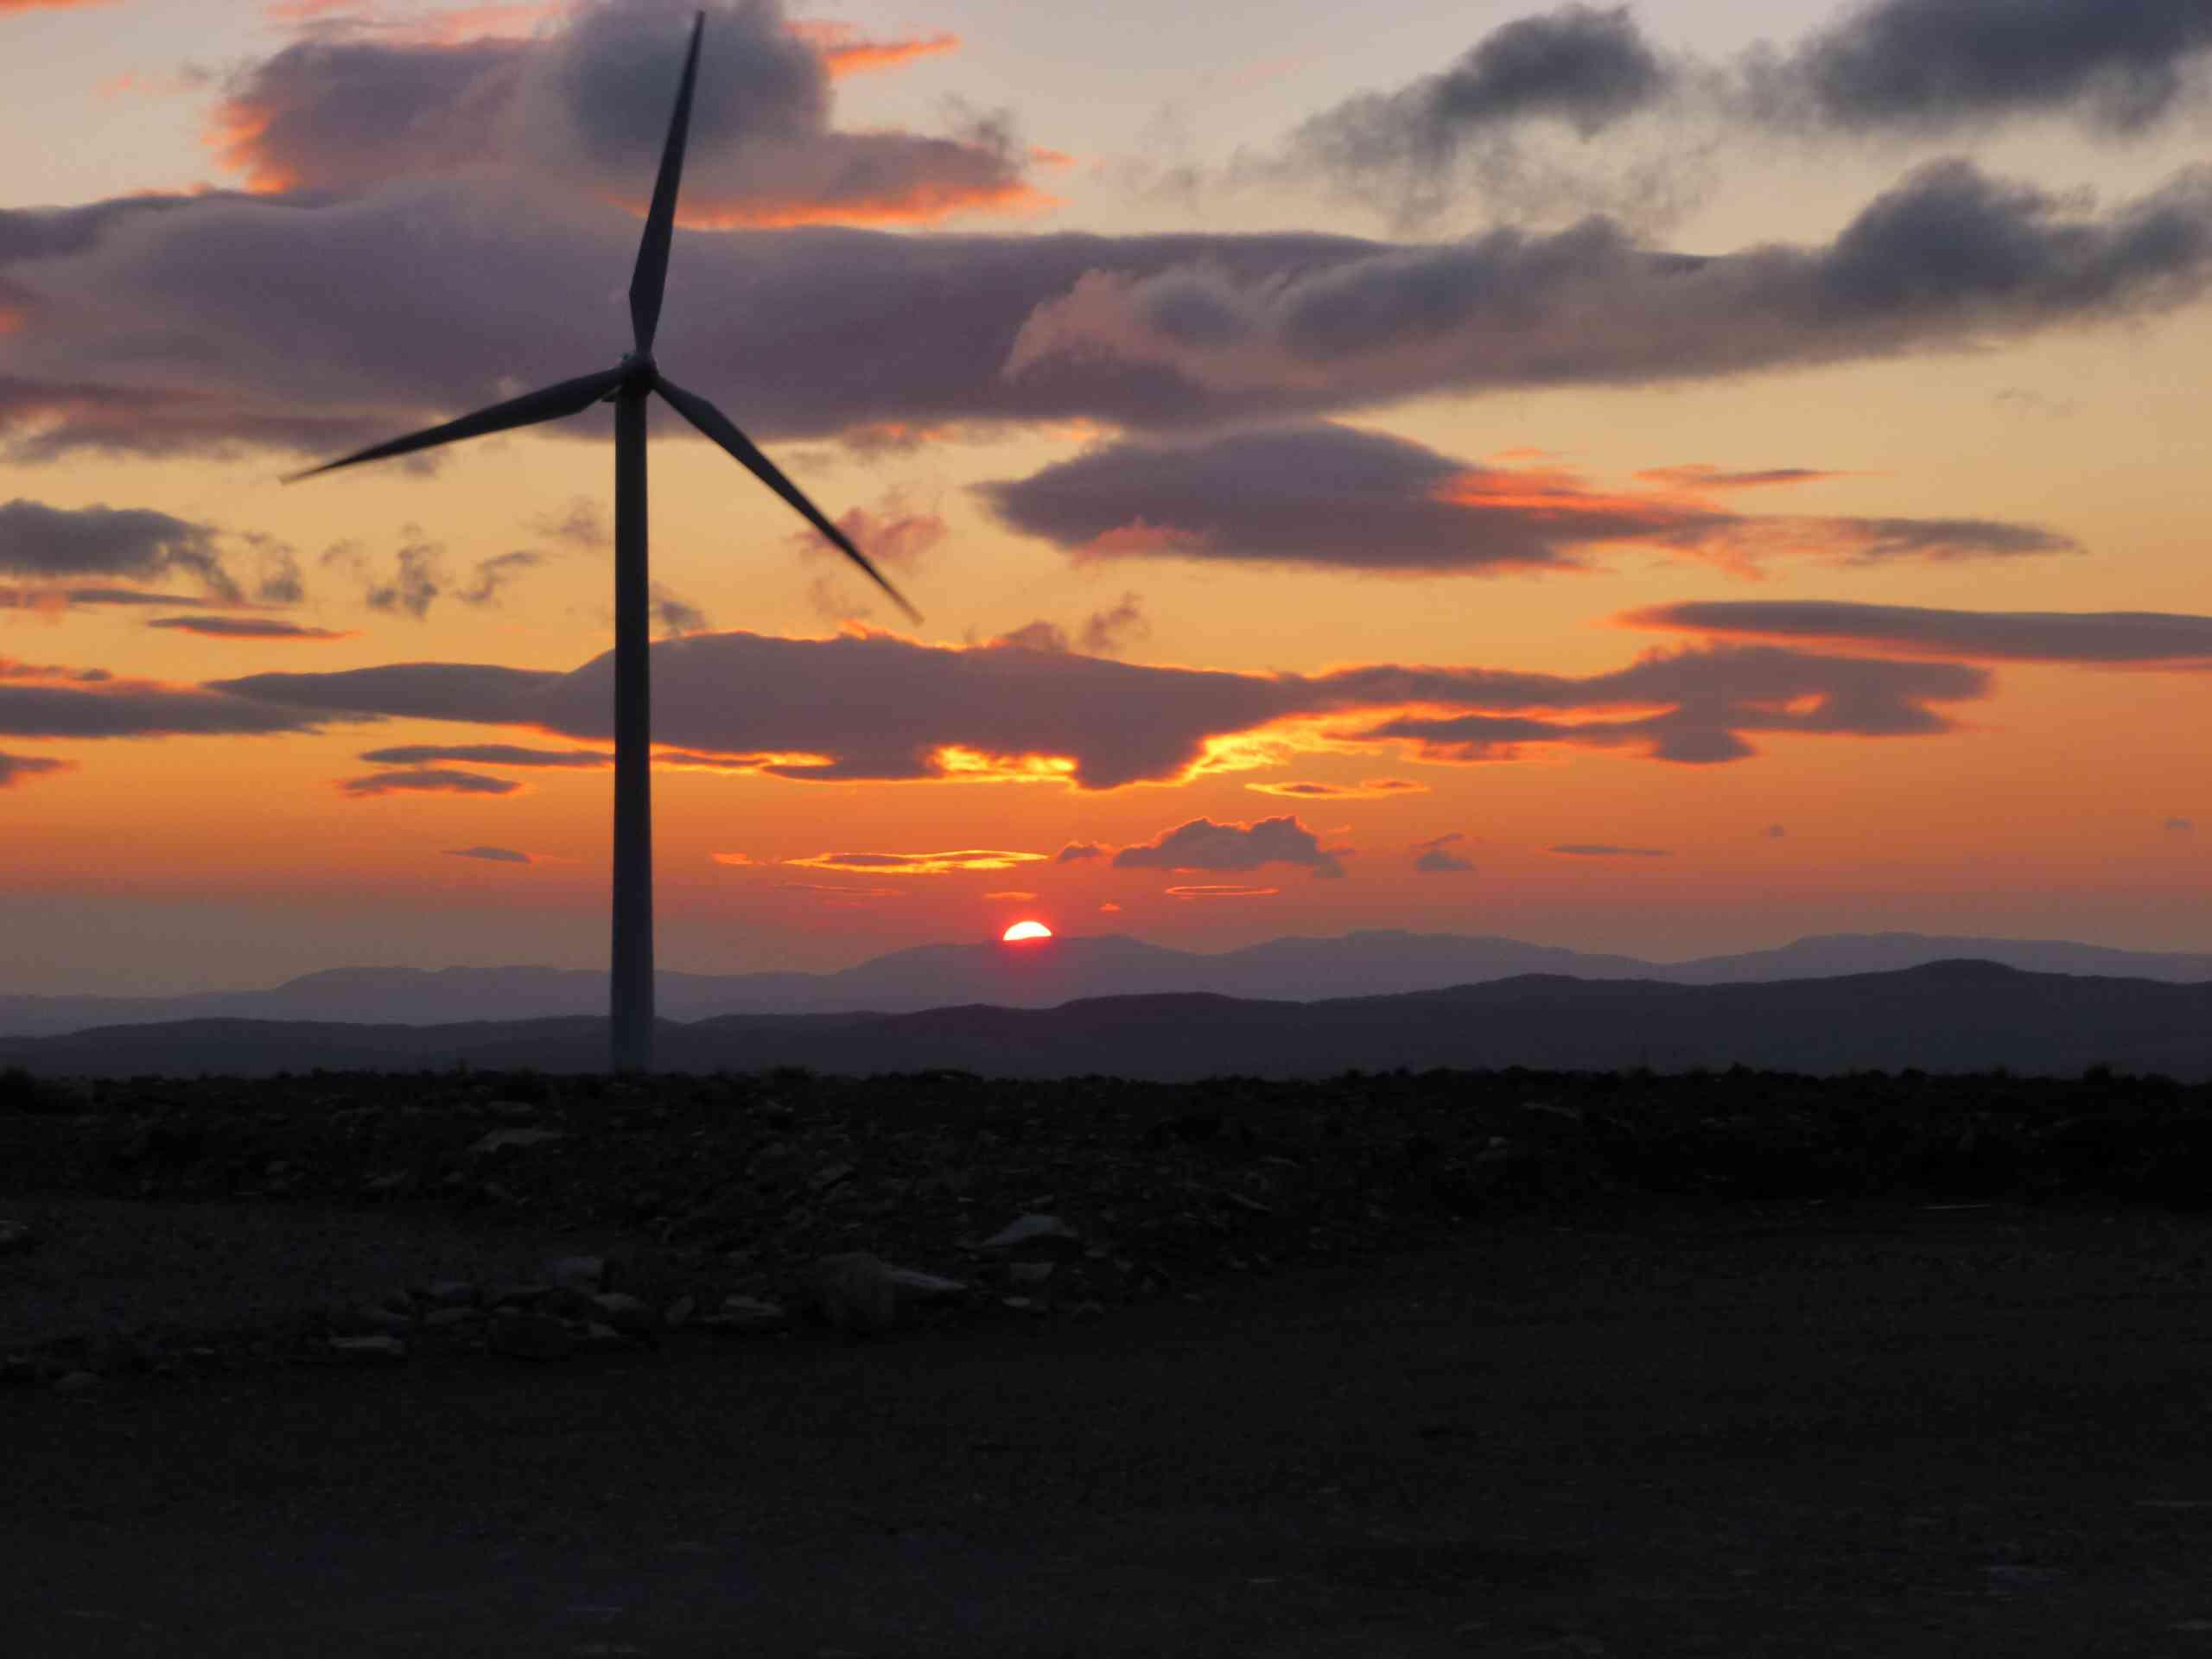 Wind Powered Education Continues to Benefit Local Communities